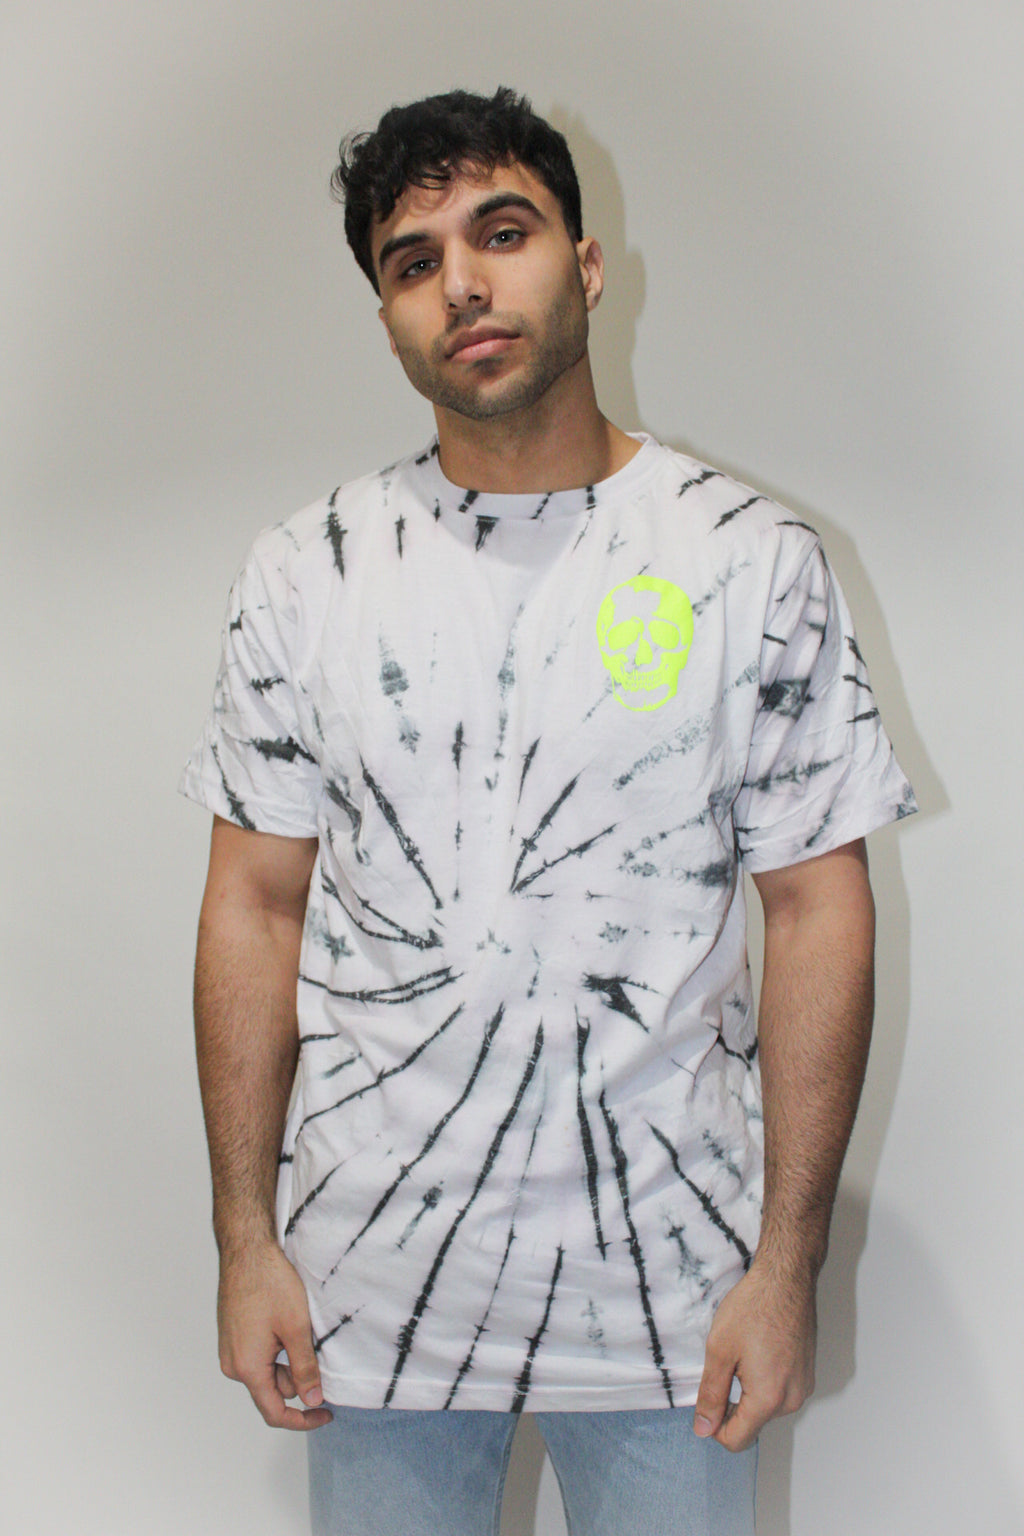 Kill Your Demons camiseta con efecto tie dye